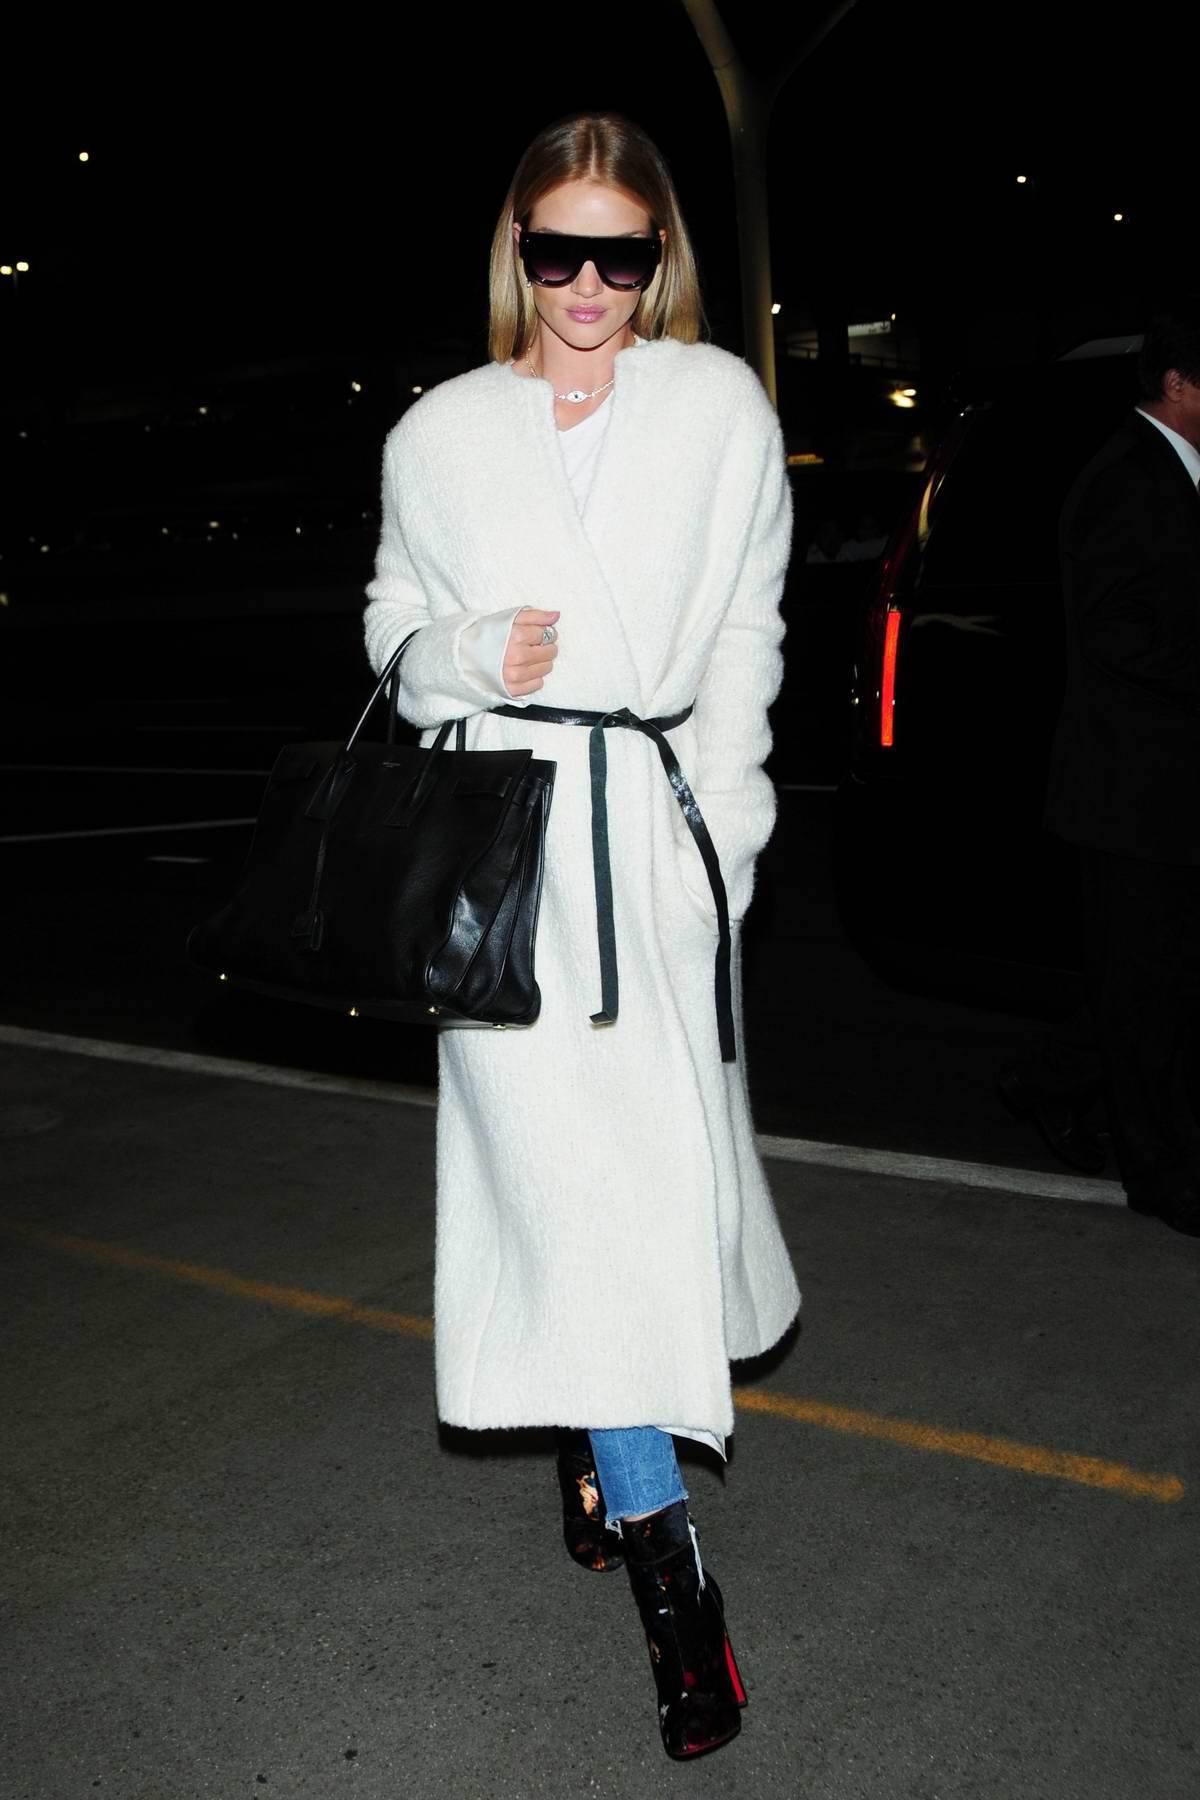 Rosie Huntington-Whiteley dressed in a white robe coat arrives at LAX airport for a flight out of Los Angeles